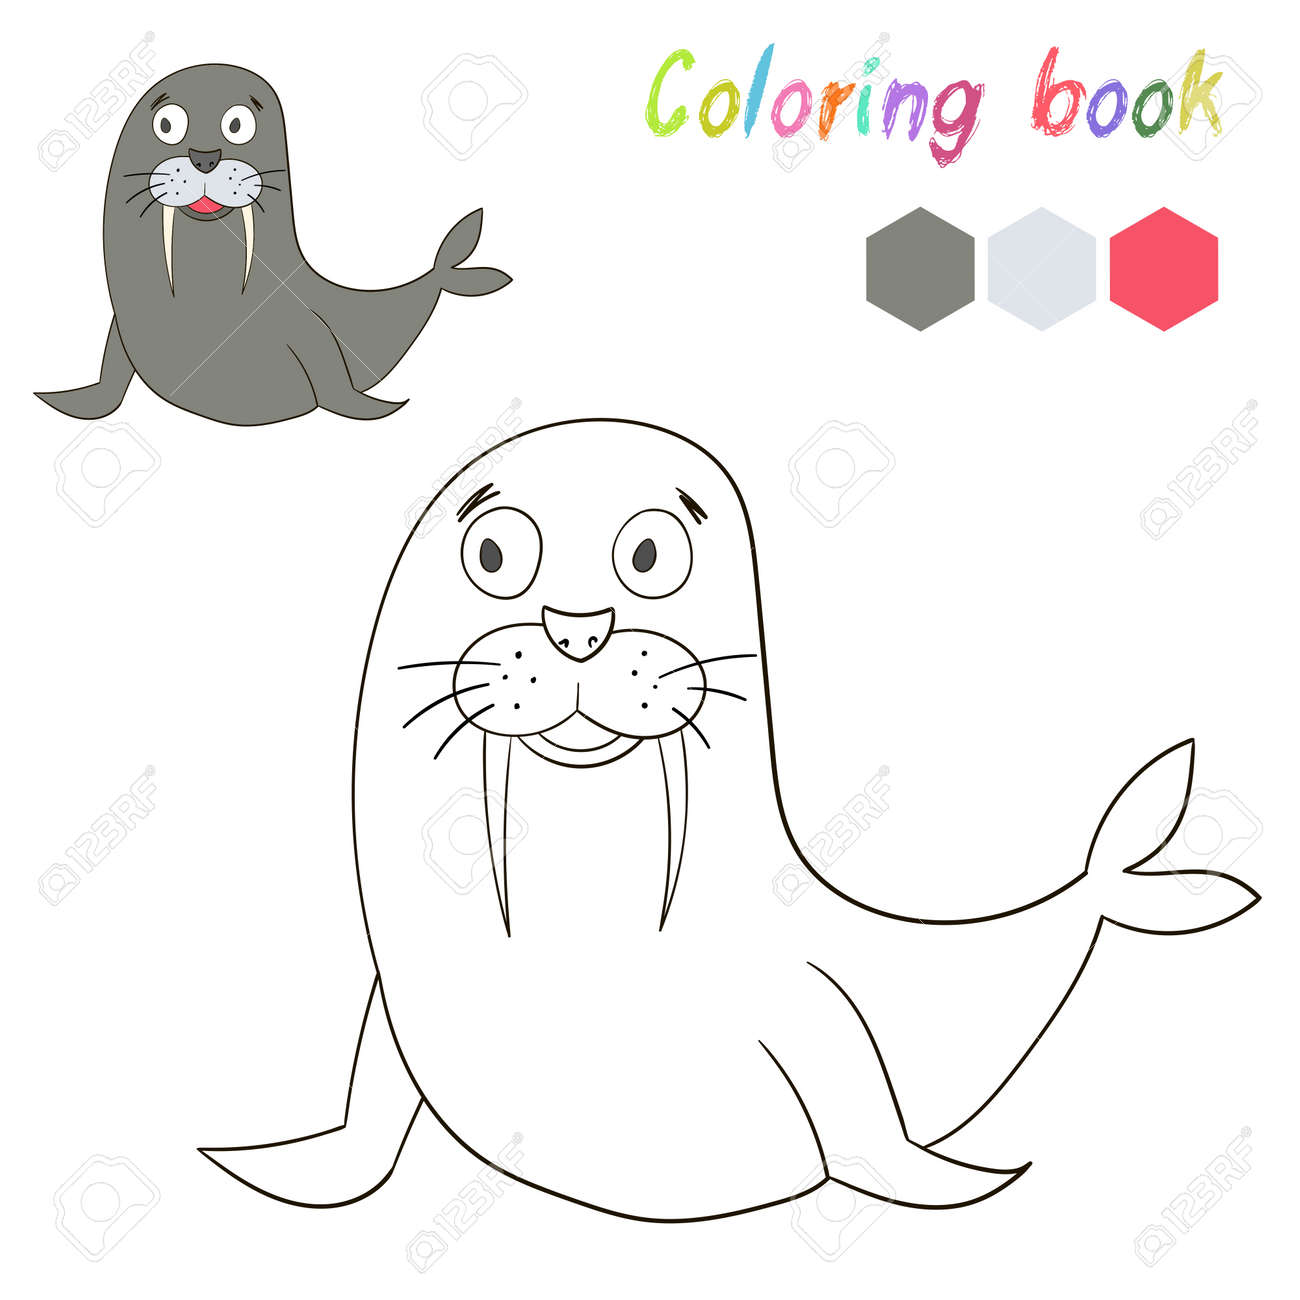 Coloring Book Bird Seal Kids Layout For Game Cartoon Doodle Hand Drawn Vector Illustration Stock